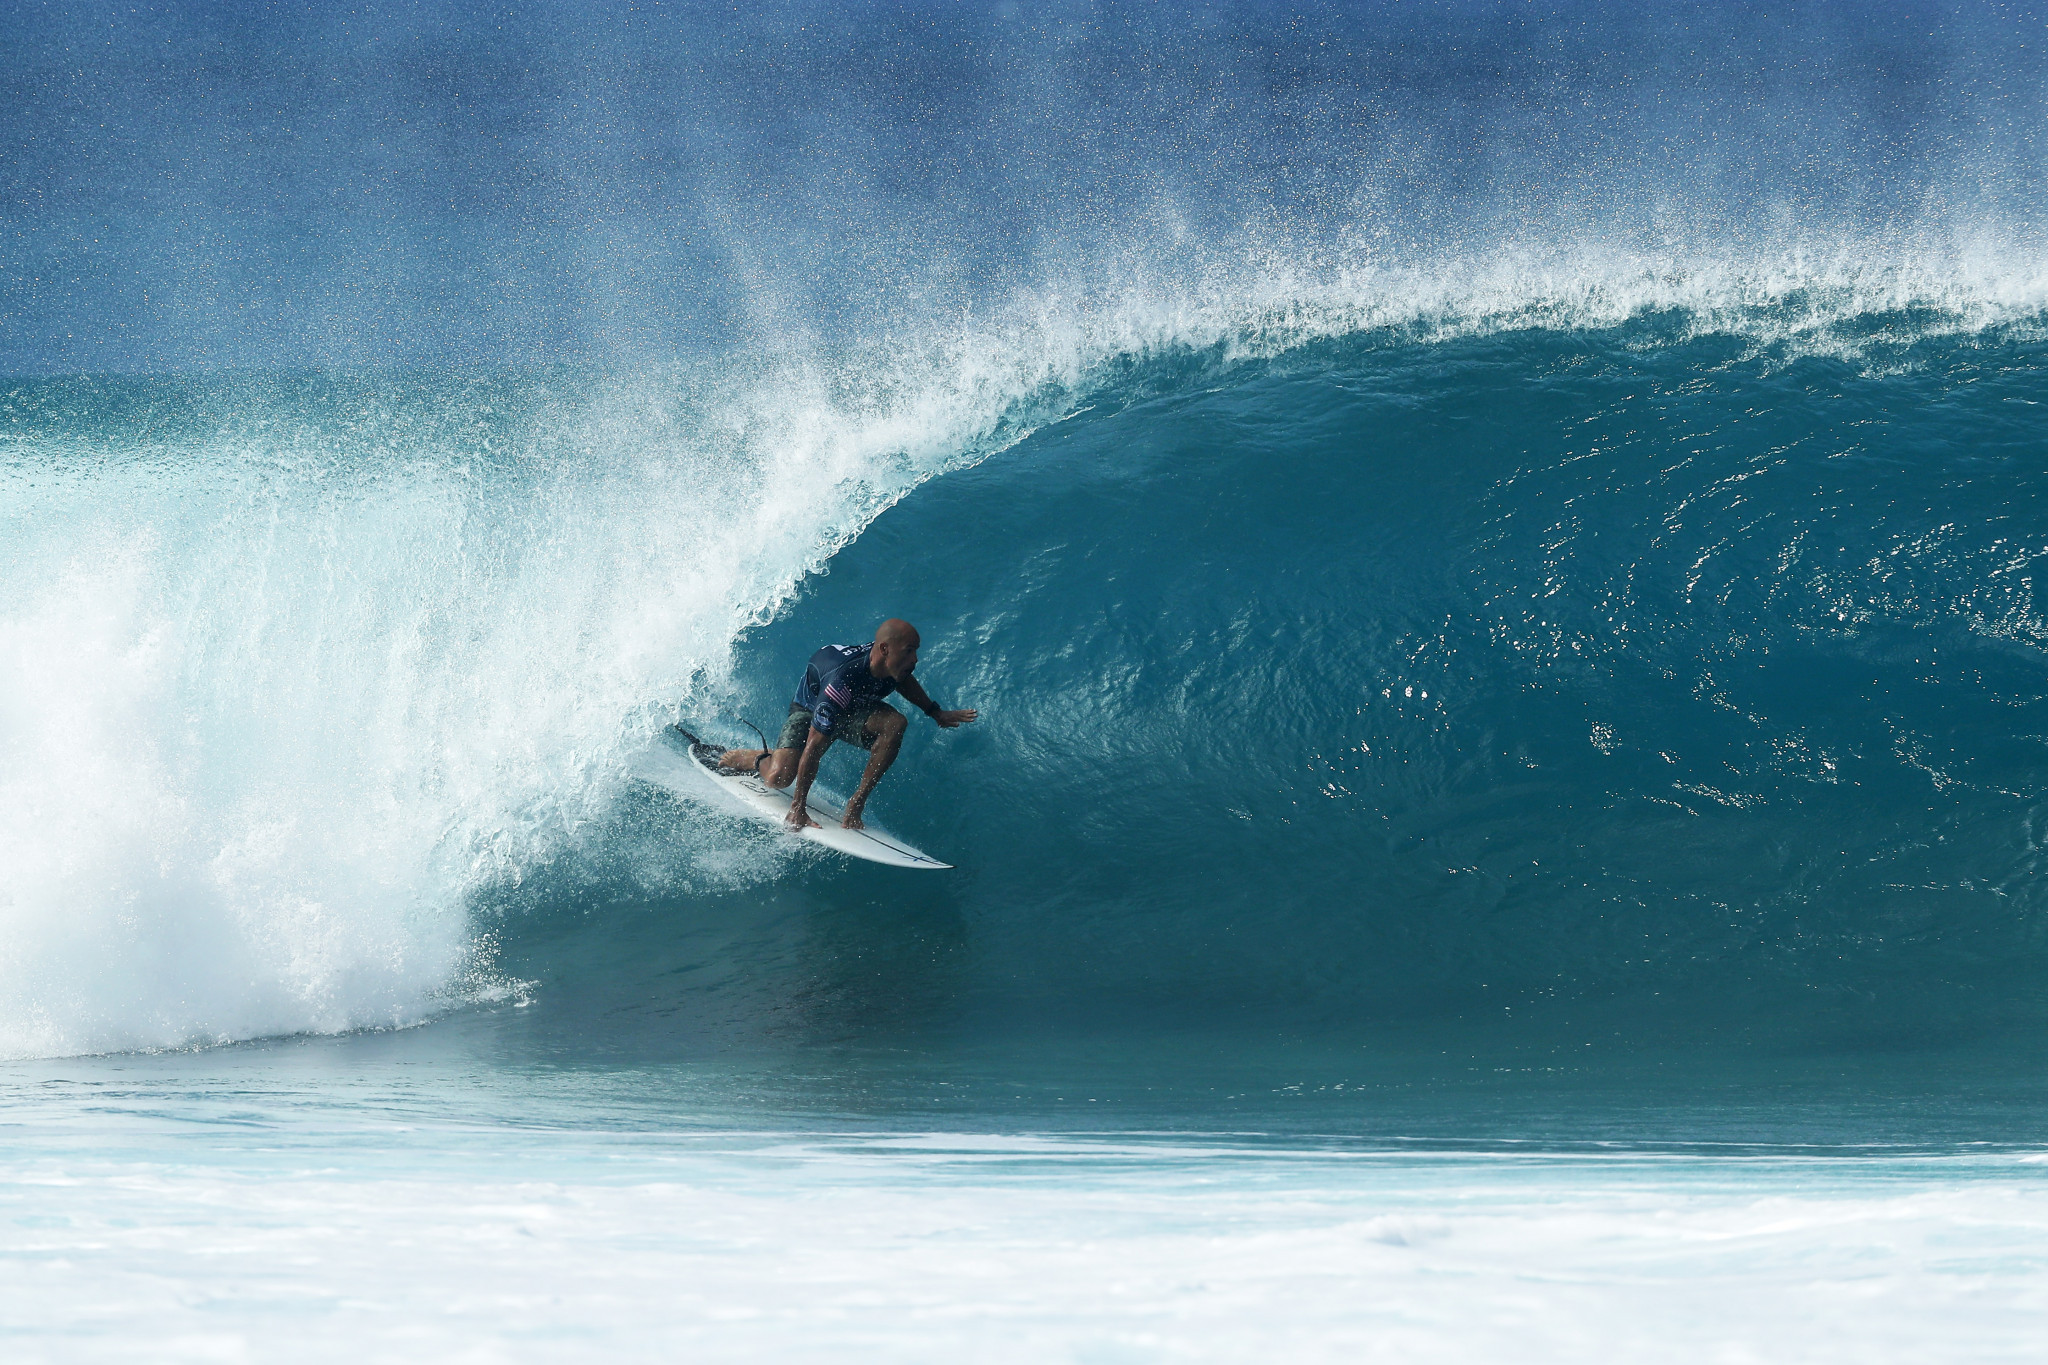 Kelly Slater's hopes of Olympic qualification came to an end in Hawaii ©Getty Images